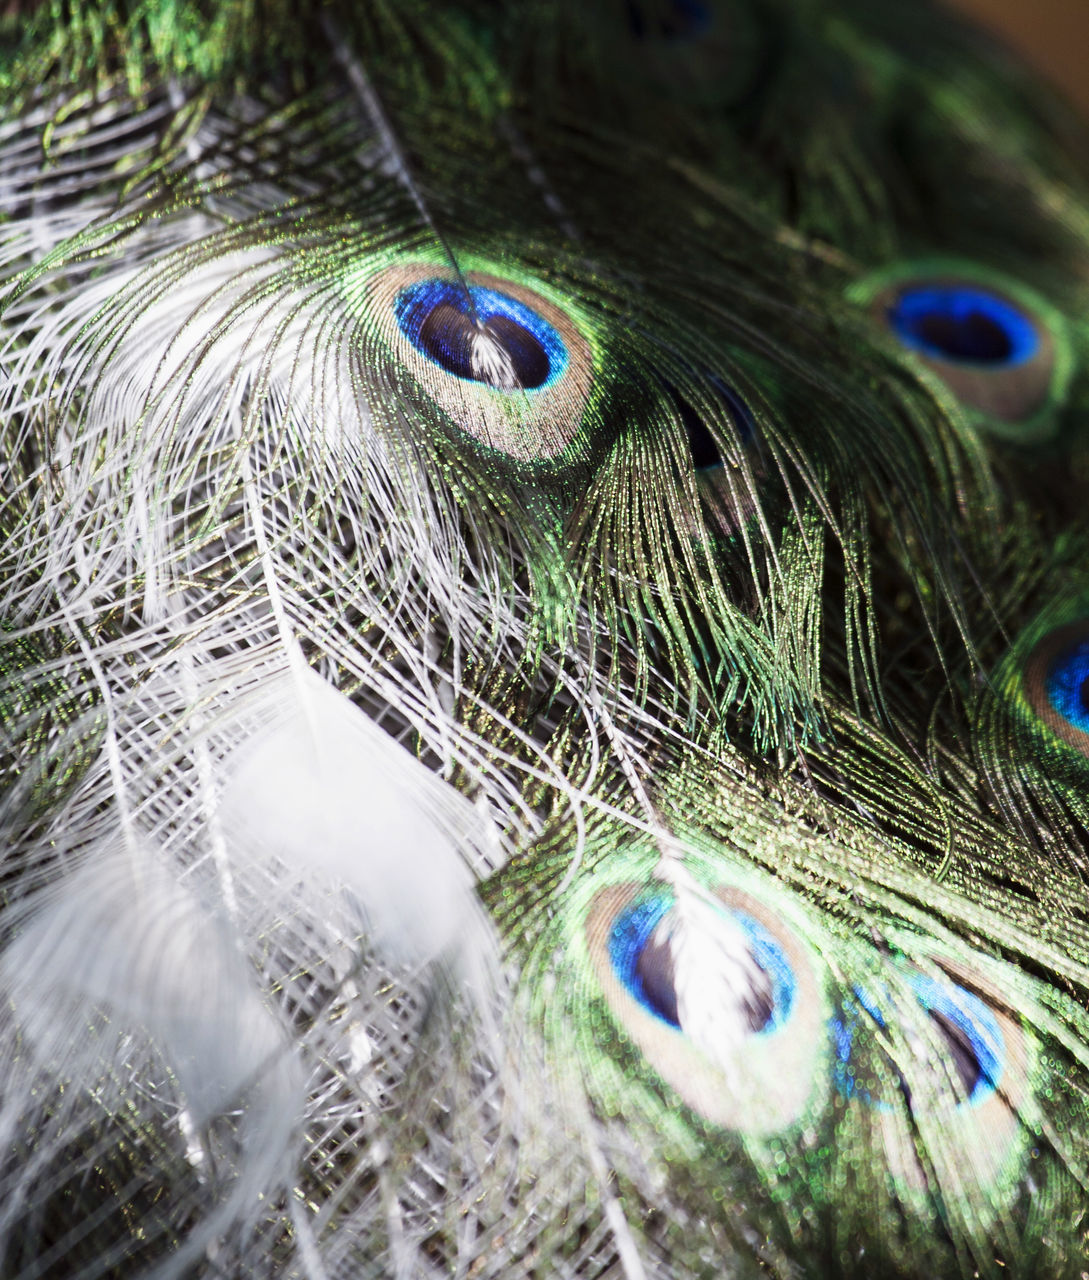 peacock, peacock feather, feather, close-up, one animal, animal themes, no people, bird, fragility, day, blue, fanned out, outdoors, nature, eyeball